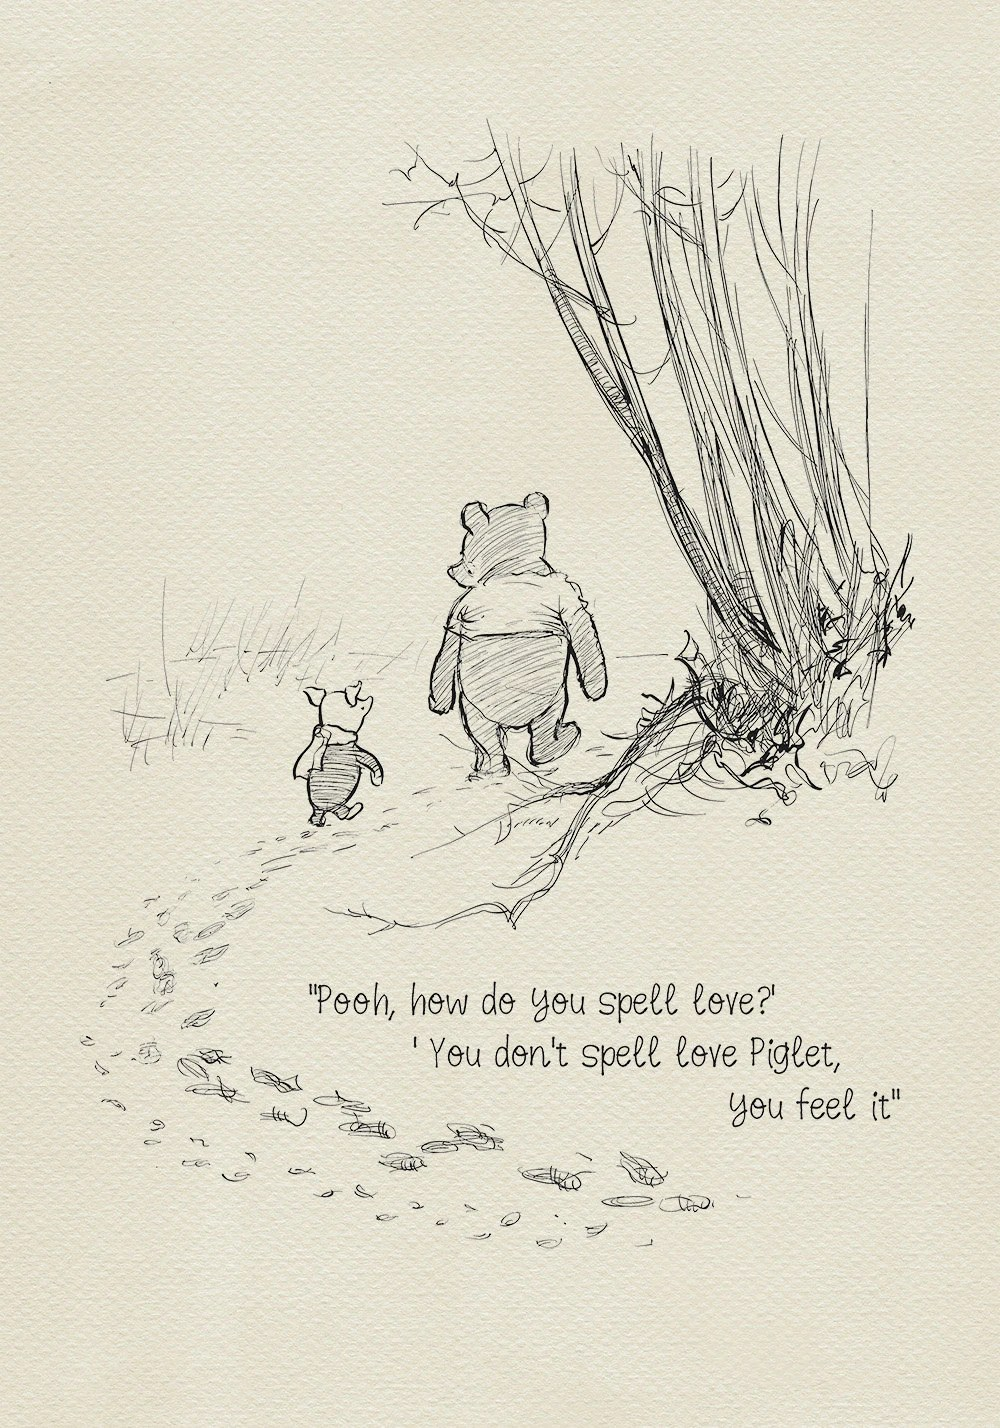 Pooh How Do You Spell Love Winnie The Pooh Quotes